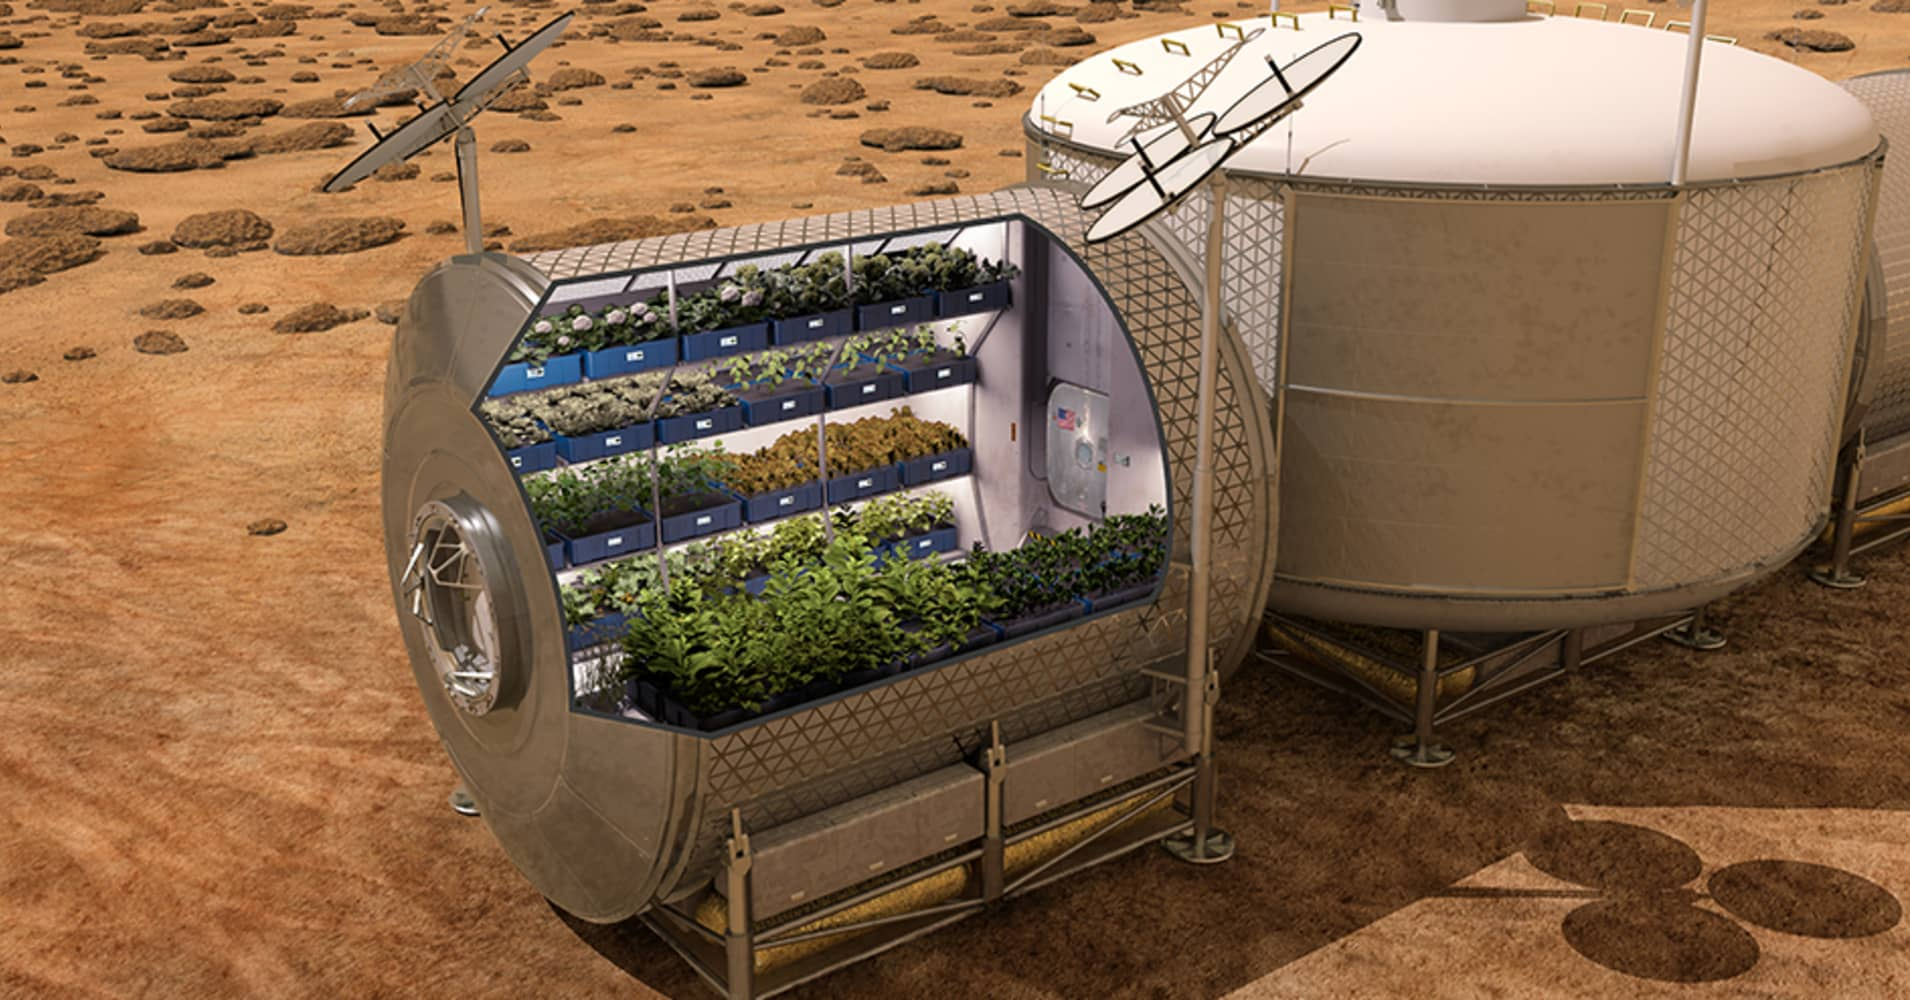 Strides in space farming may boost plan to build human